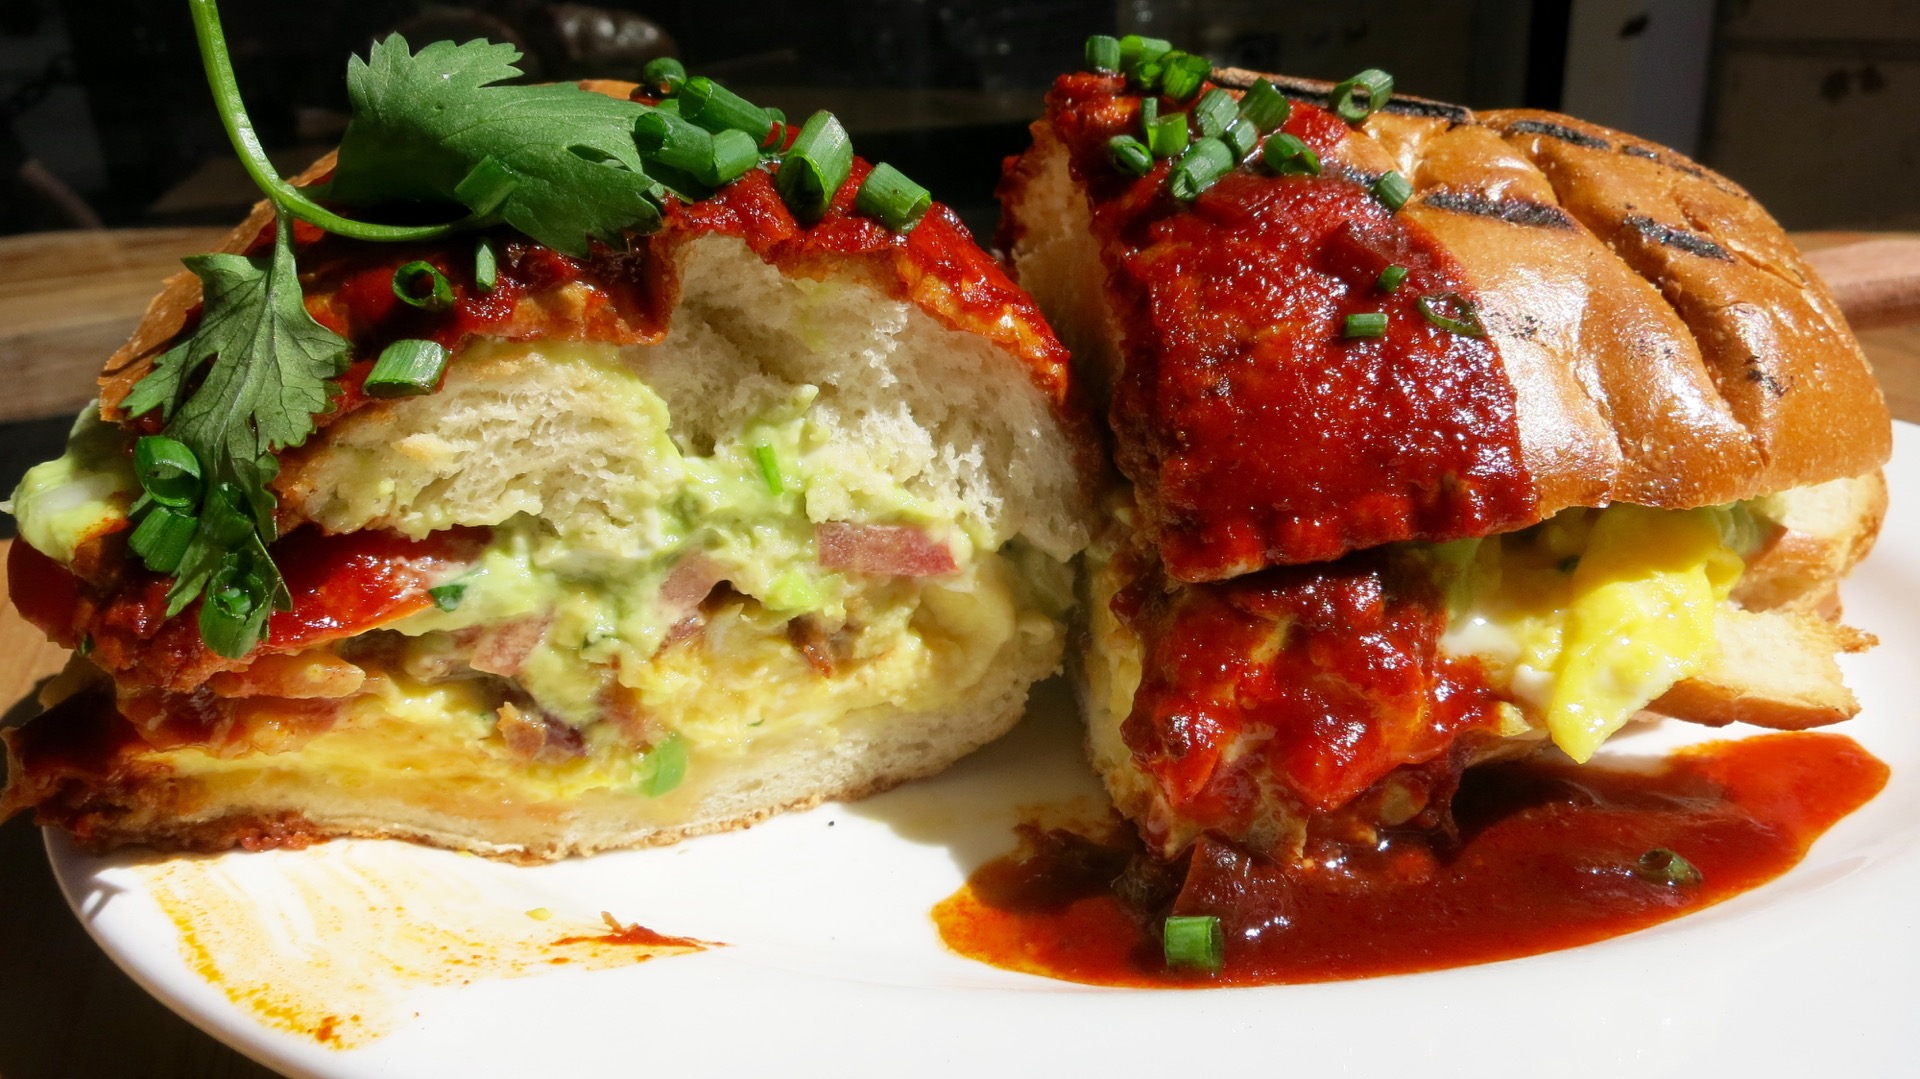 Cosecha's hefty torta sandwich requires two hands and several napkins.